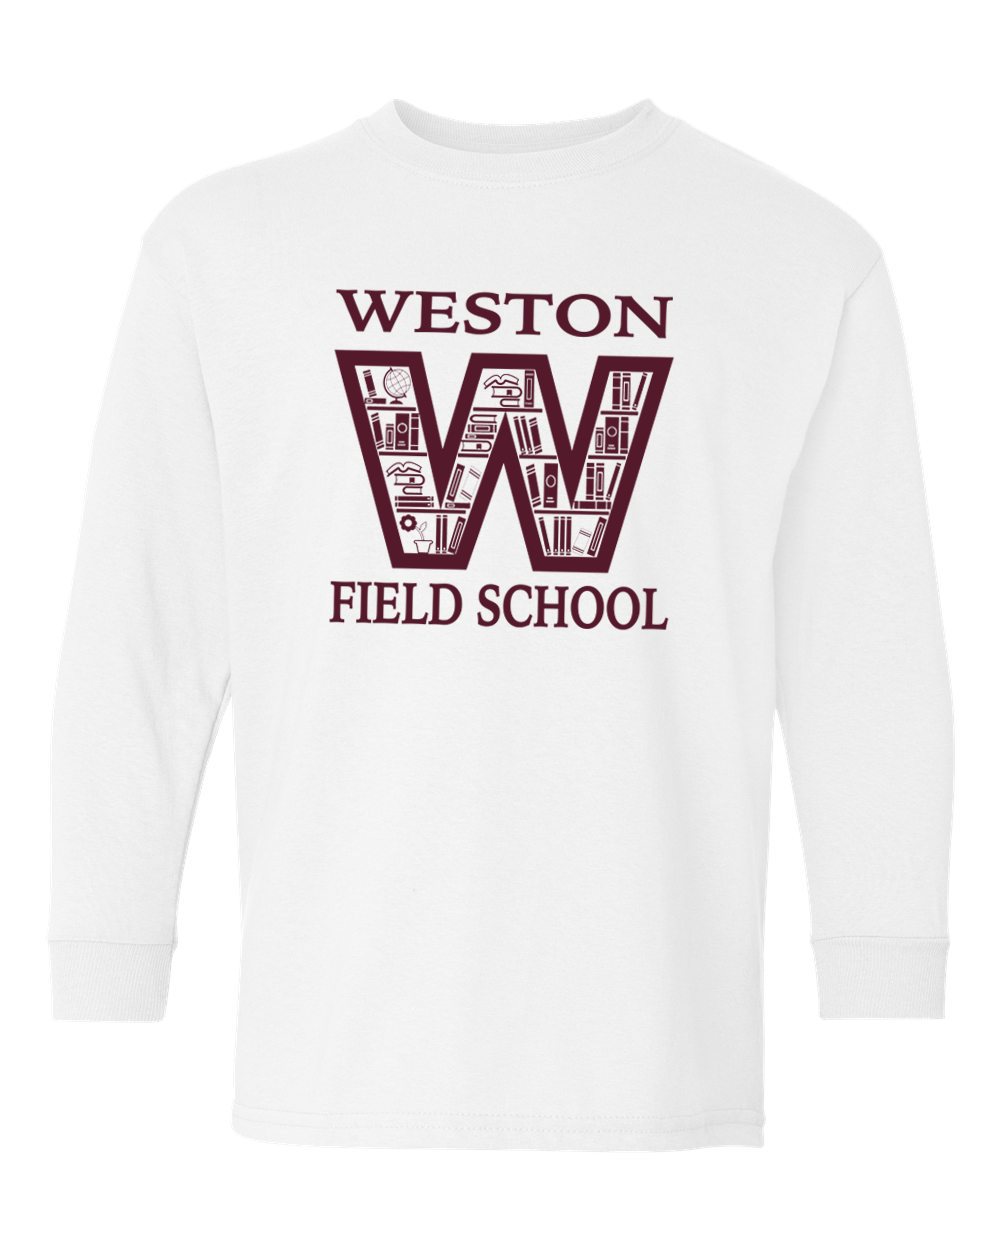 Weston Field School Youth & Adult Long Sleeve Tee